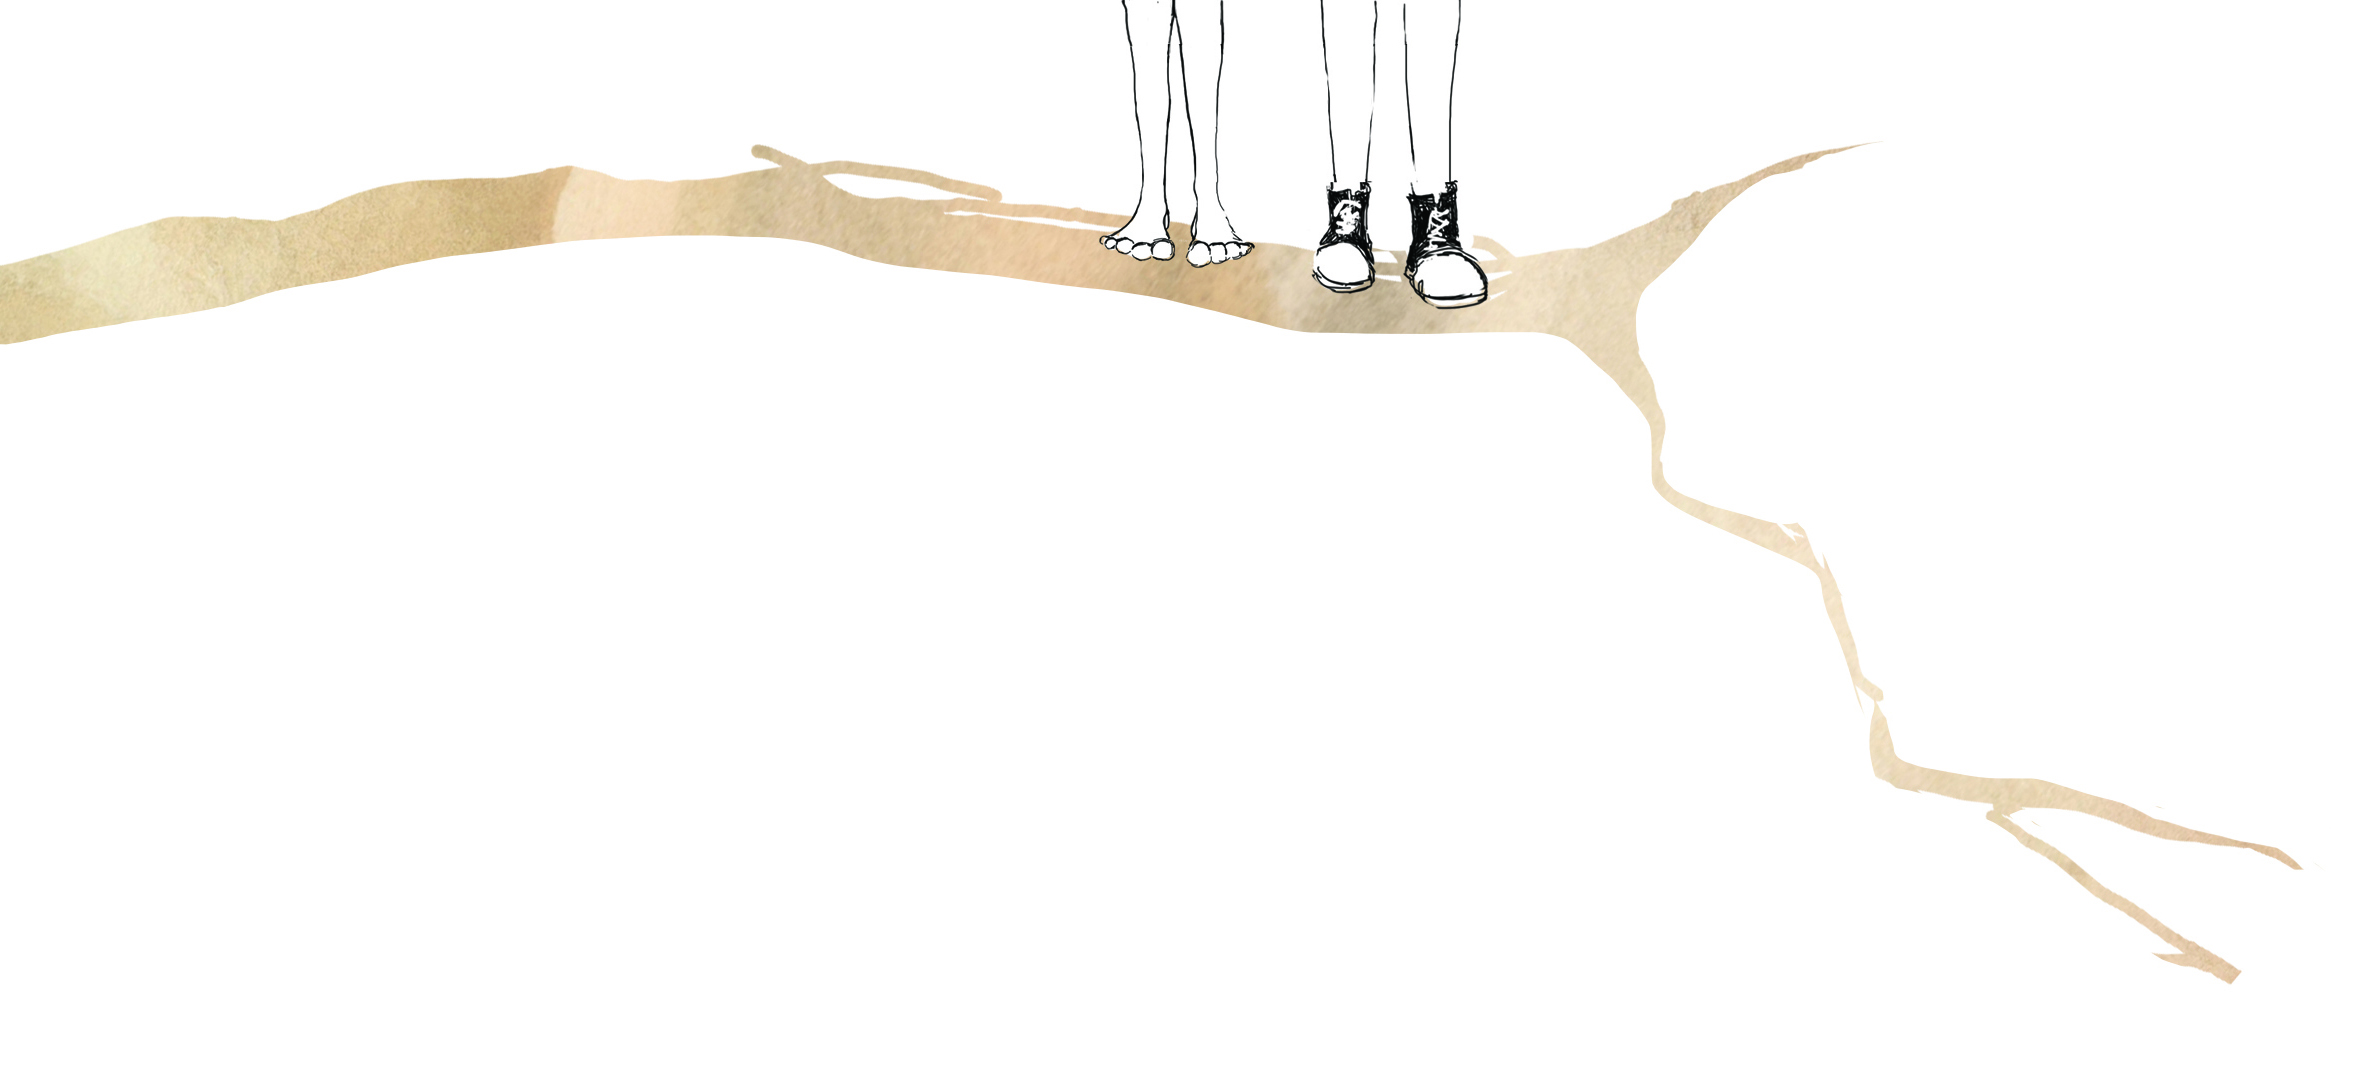 Wendy and PJ are standing on a branch. Wendy is barefoot, PJ wears his sneakers. You can only see their feet in this image. The rest of their bodies go off the page.